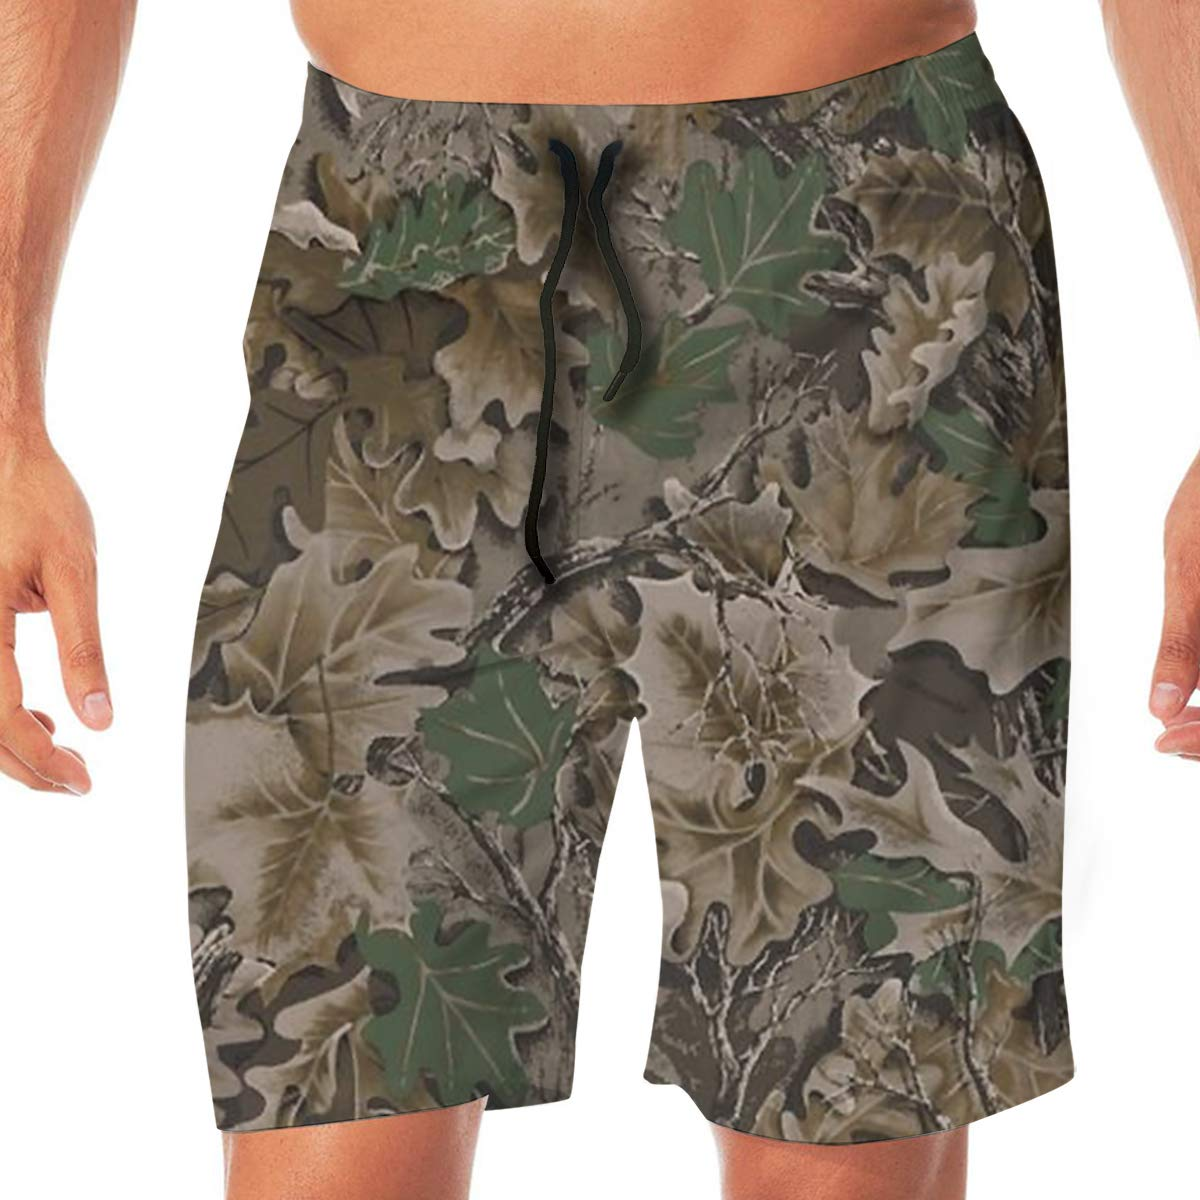 MaoYTUI Realtree Camo Wallpapers Mens Swim Trunks Boys Quick Dry Bathing Suits Drawstring Waist Beach Broad Shorts Swim Suit Beachwear with Mesh Lining